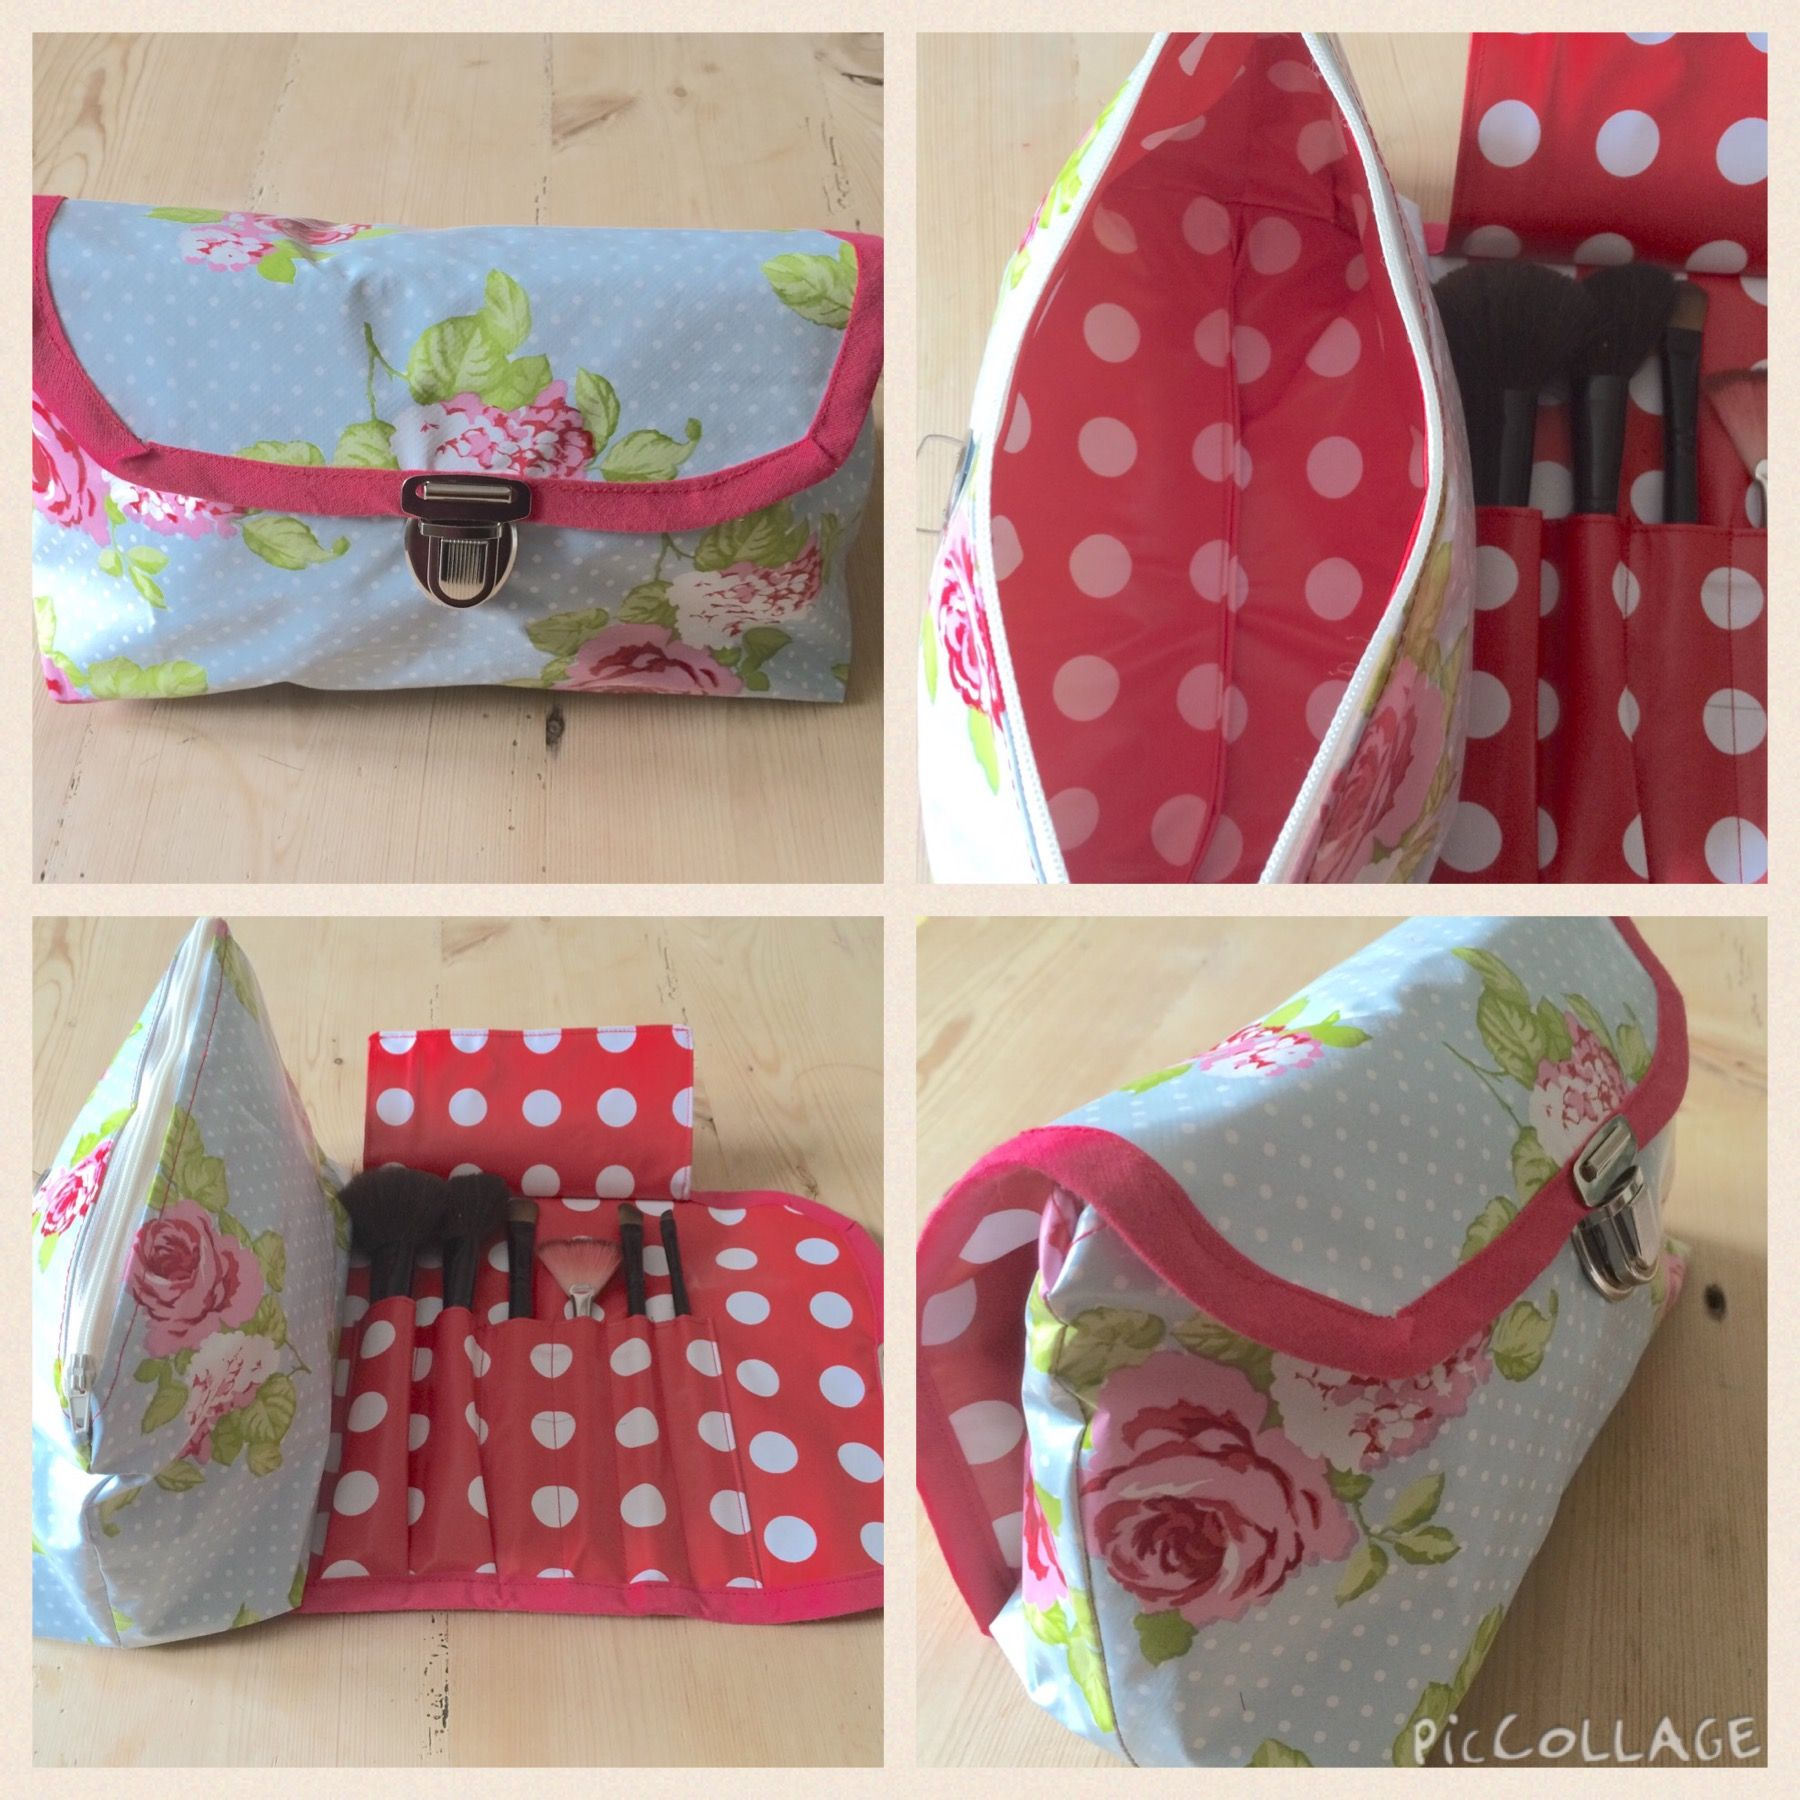 Oilcloth makeup bag and brush roll from Sew Sew Easy